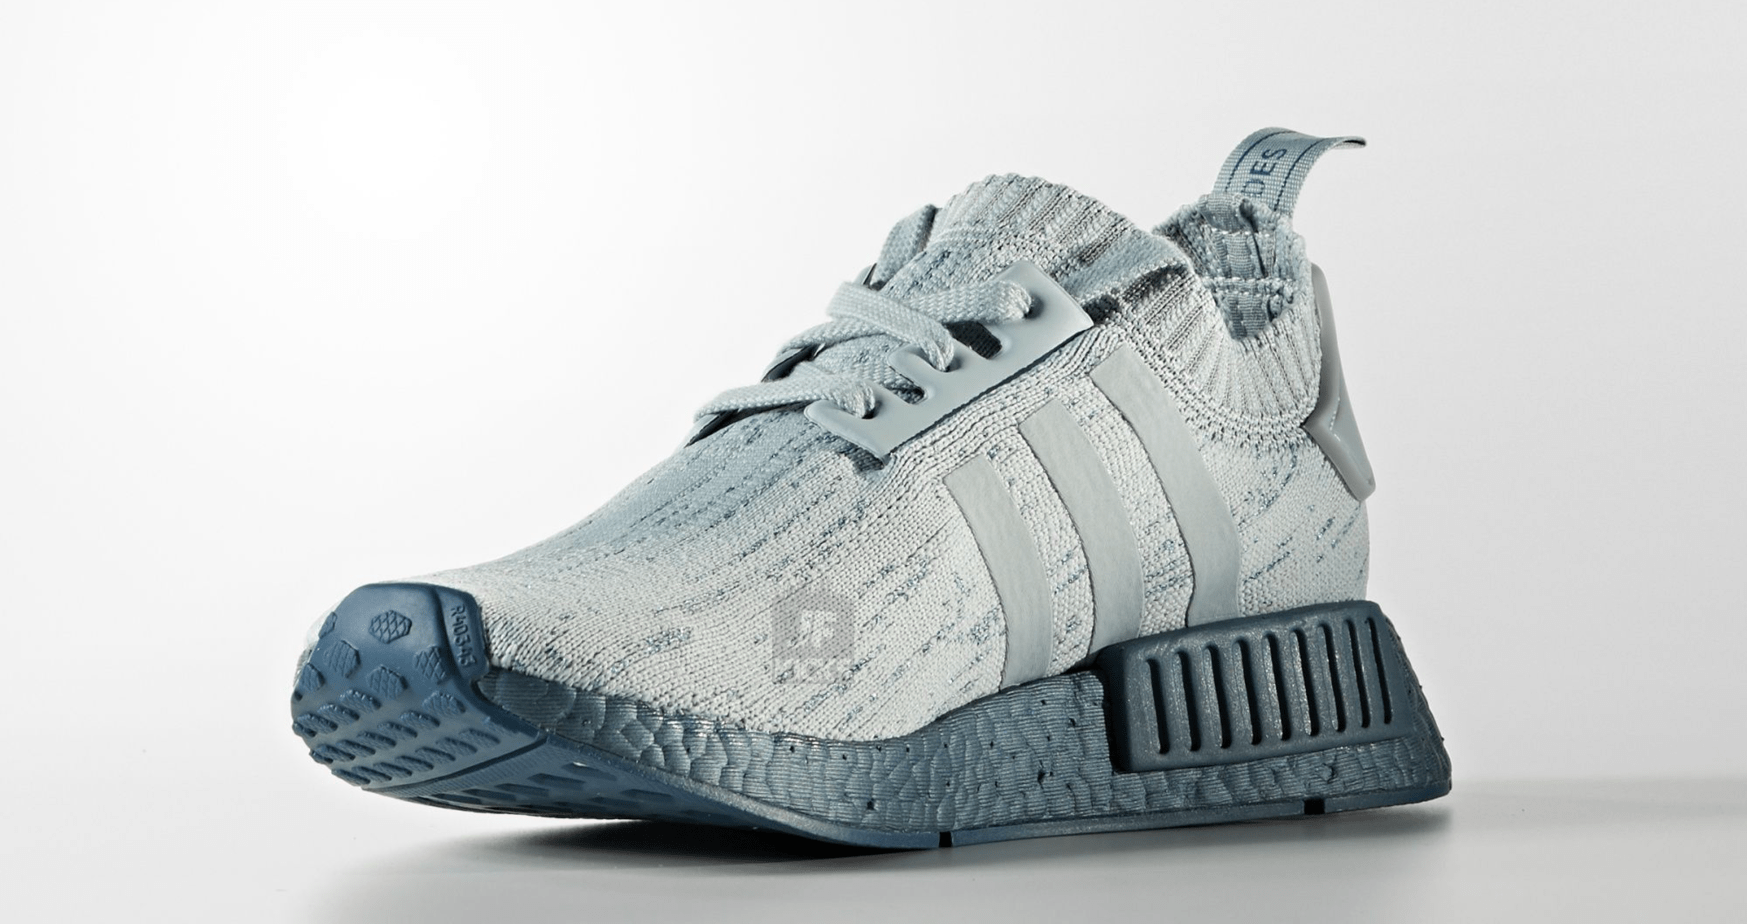 9d25948c60835 ... switzerland nmd r1 pk sea crystal release date. the adidas nmdr1  primeknit tactile green petrol ...